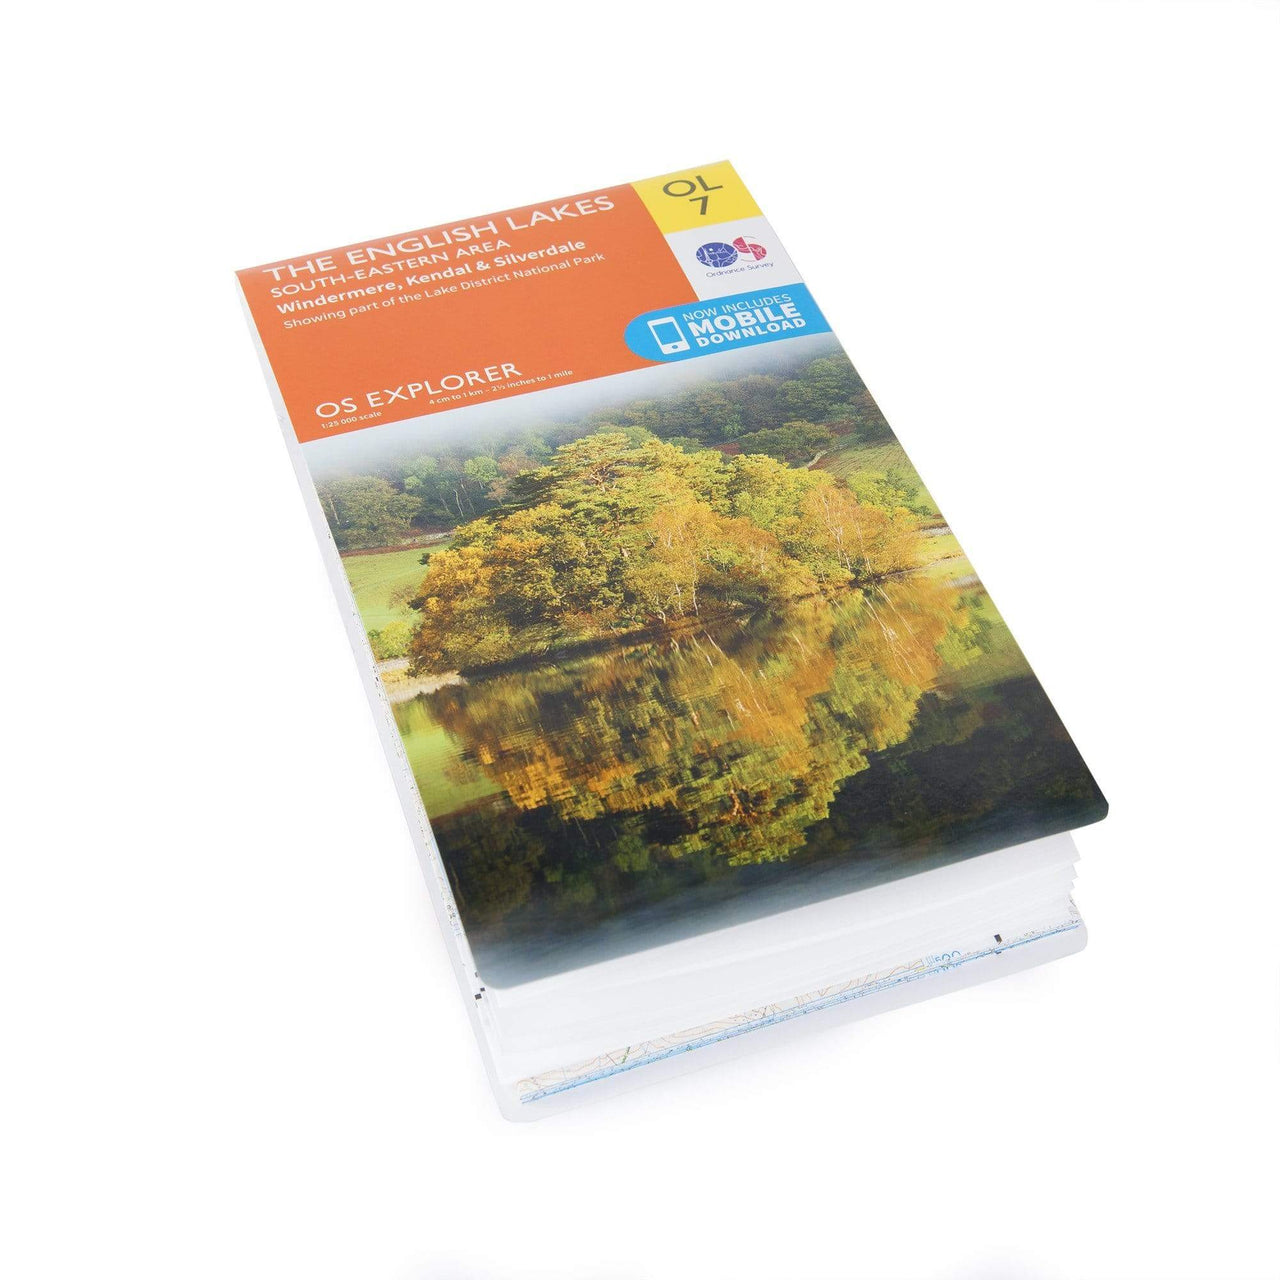 OS Explorer Maps: The English Lakes - South East